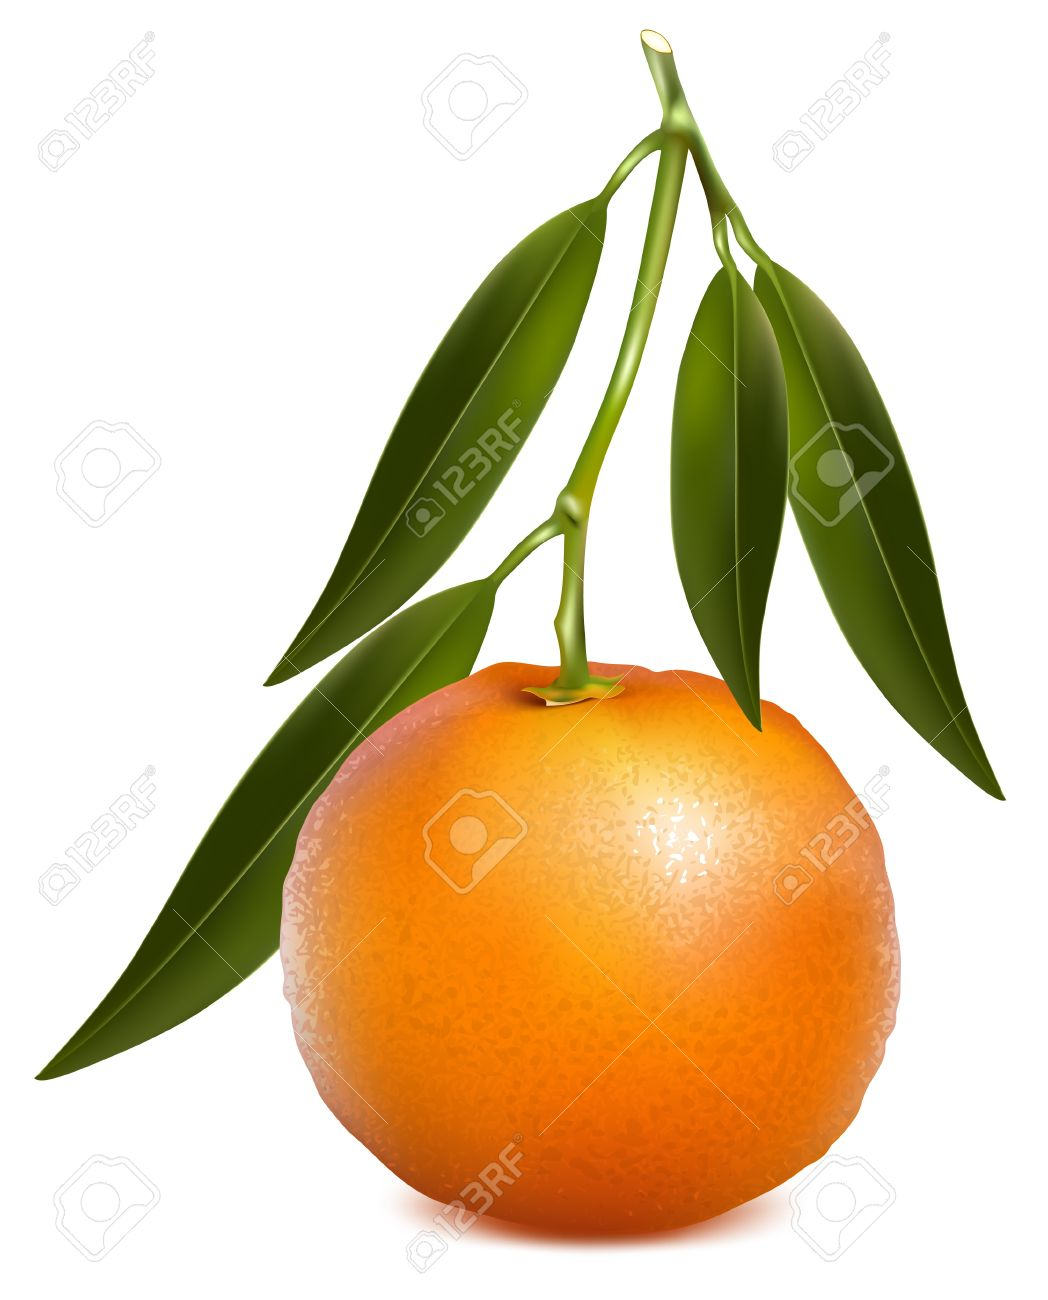 3,670 Mandarin Orange Stock Vector Illustration And Royalty Free.